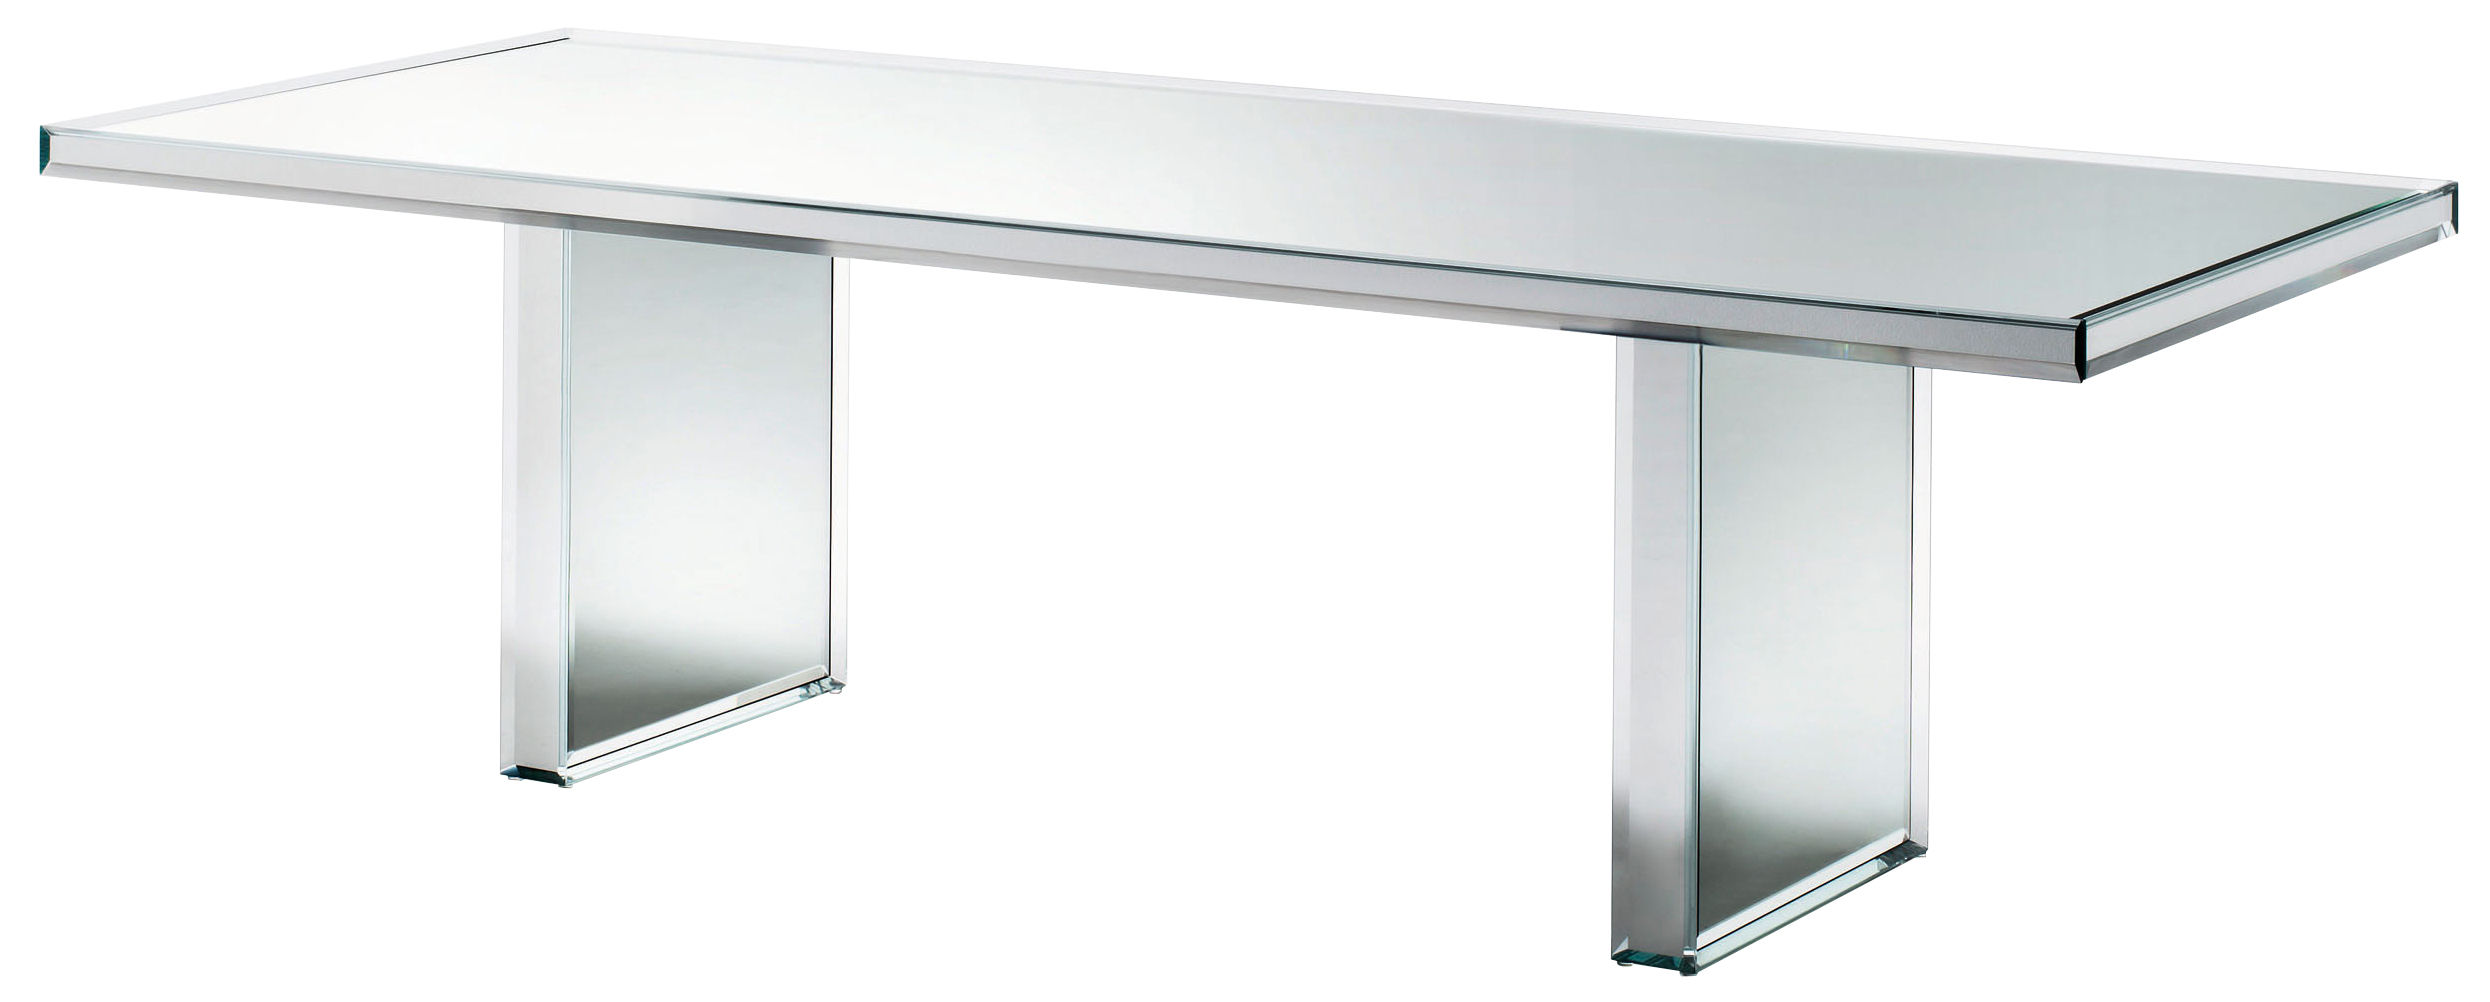 Mobilier - Tables - Table rectangulaire Prism Mirror / 240 x 90 cm - Glas Italia - Miroir - Verre finition miroir